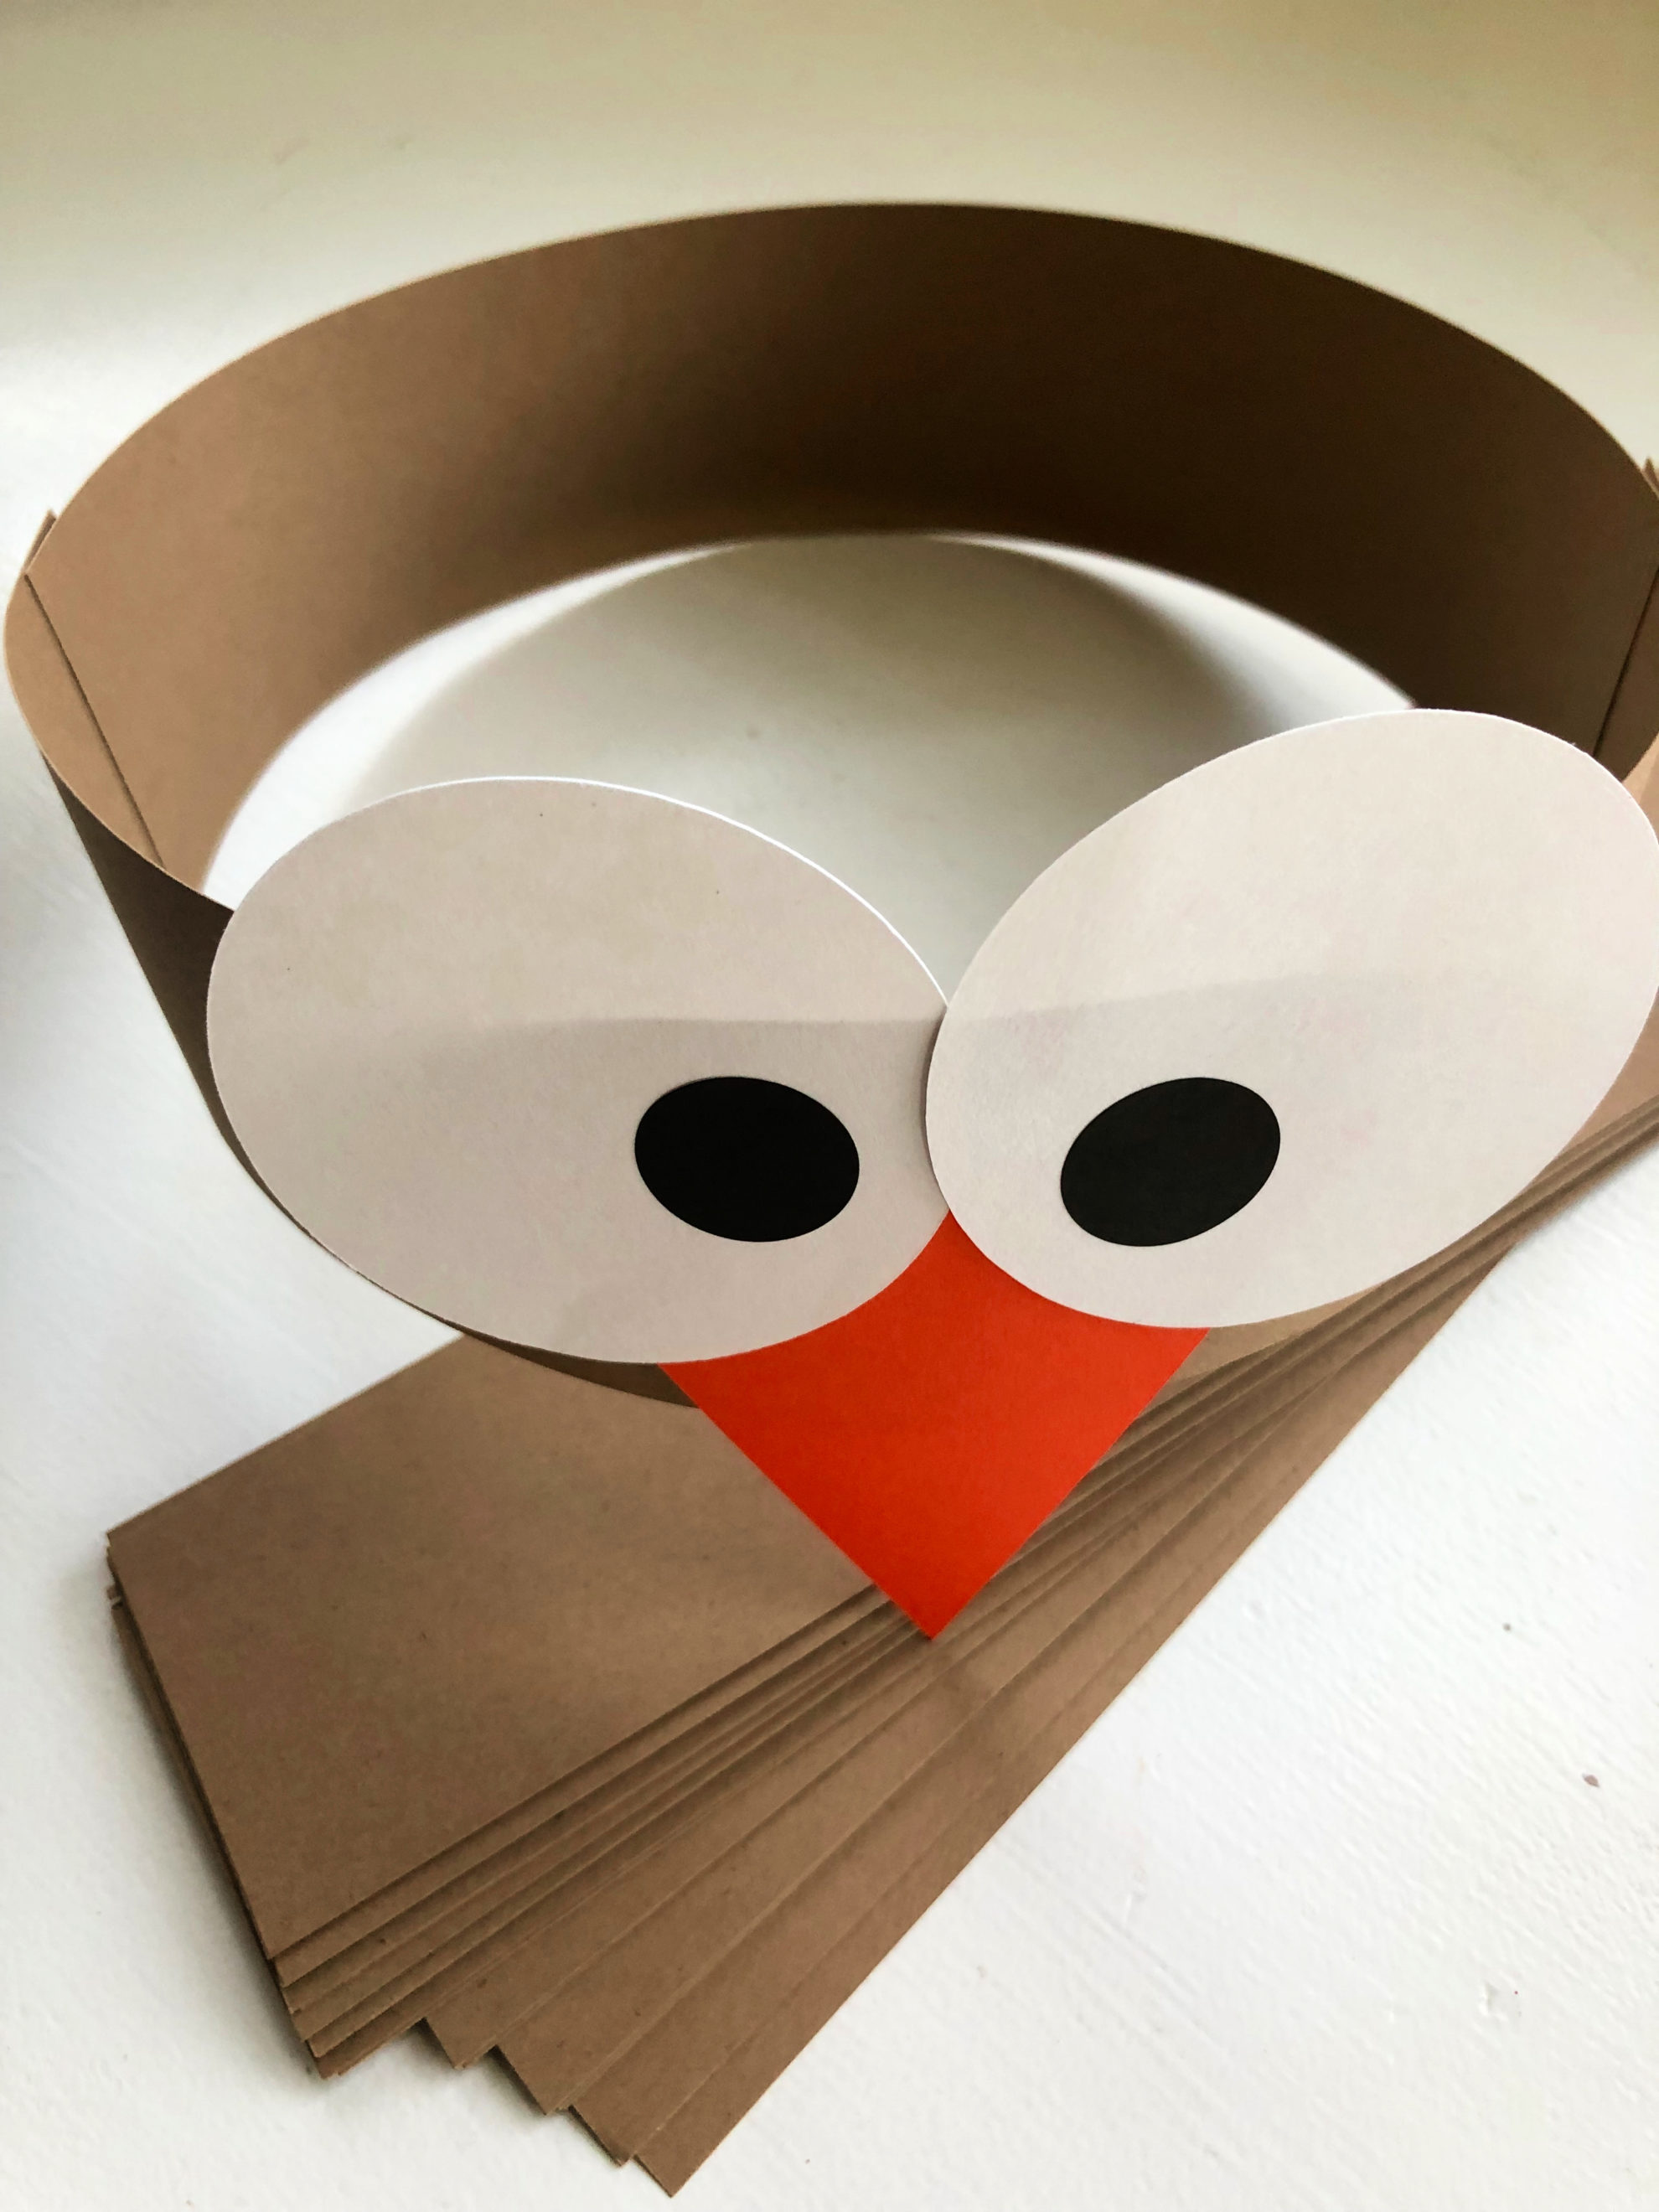 Brown paper headband with white circle and black pupil stickers with an orange triangle beak.